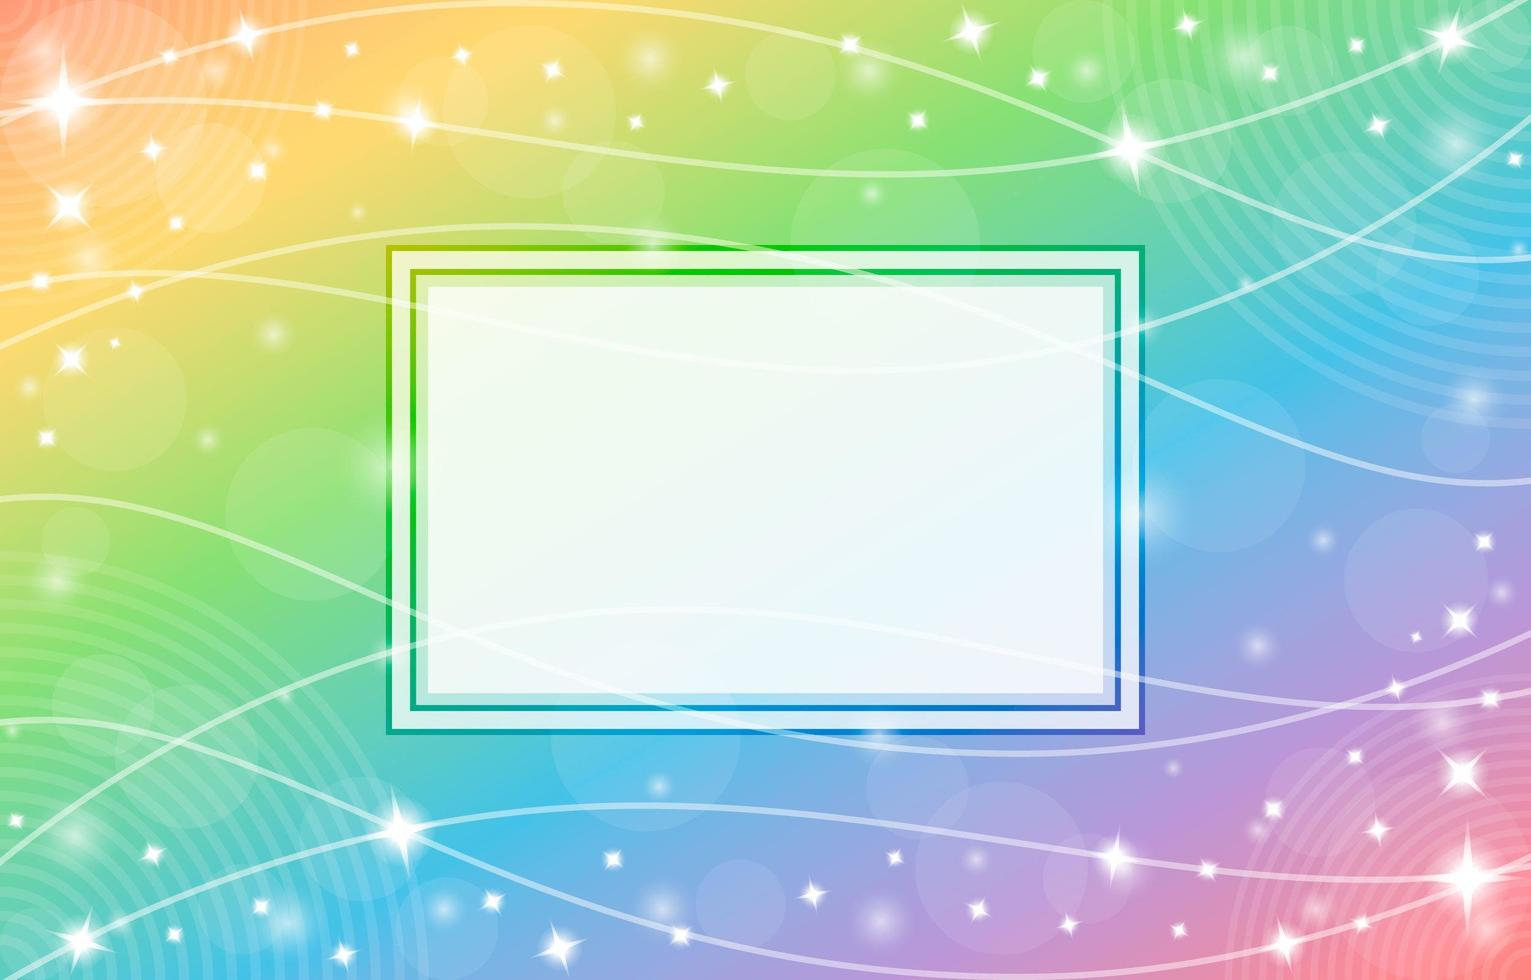 Gradient Rainbow Background with Frame and Wave Pattern Composition vector